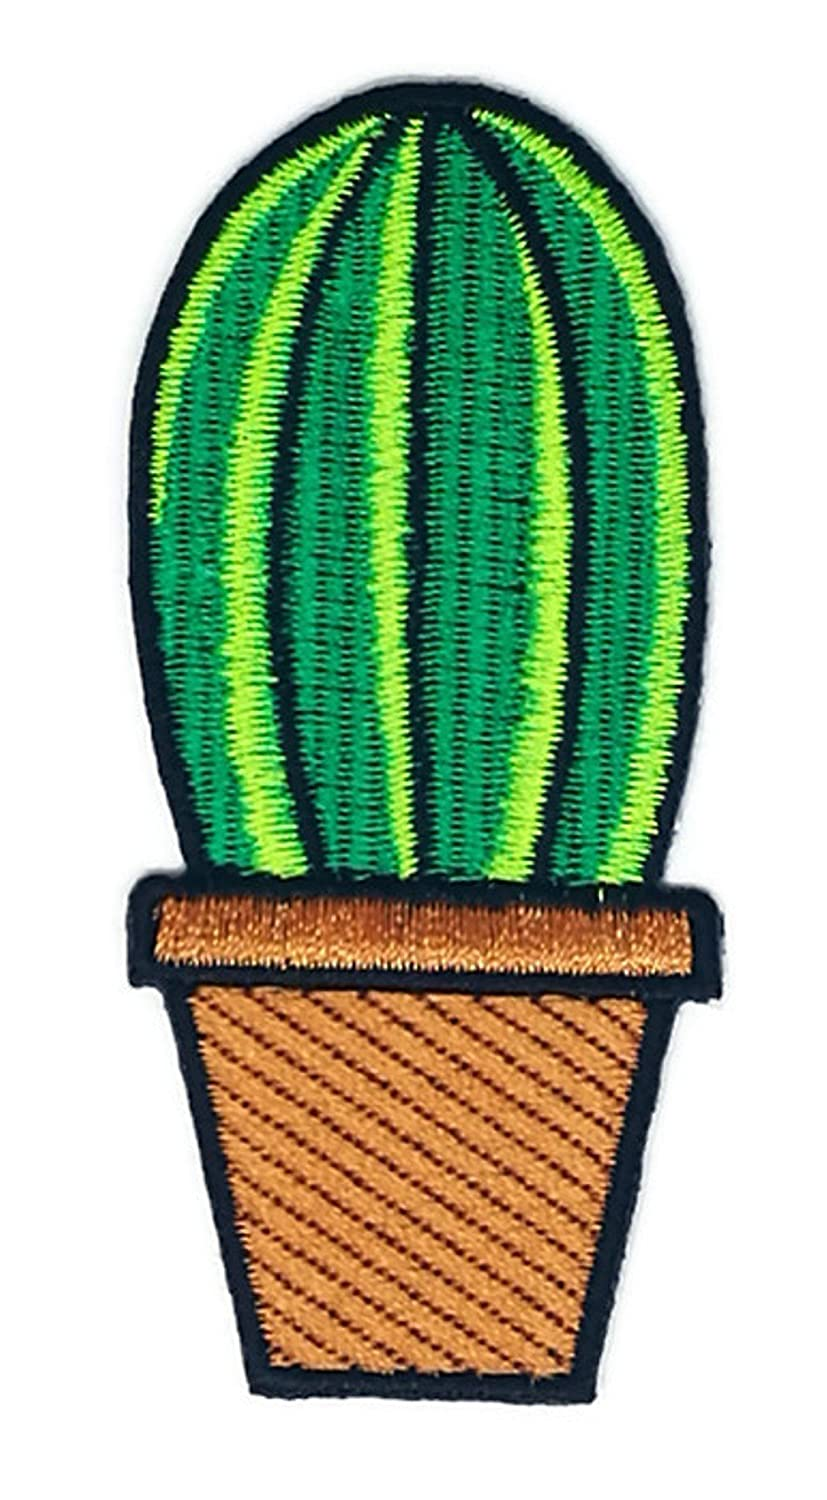 Cactus Brown Flowerpot Cartoon Sign Hippie Retro Biker Jacket T-shirt Vest Patch Sew Iron on Embroidered Badge Custom Iron on patches